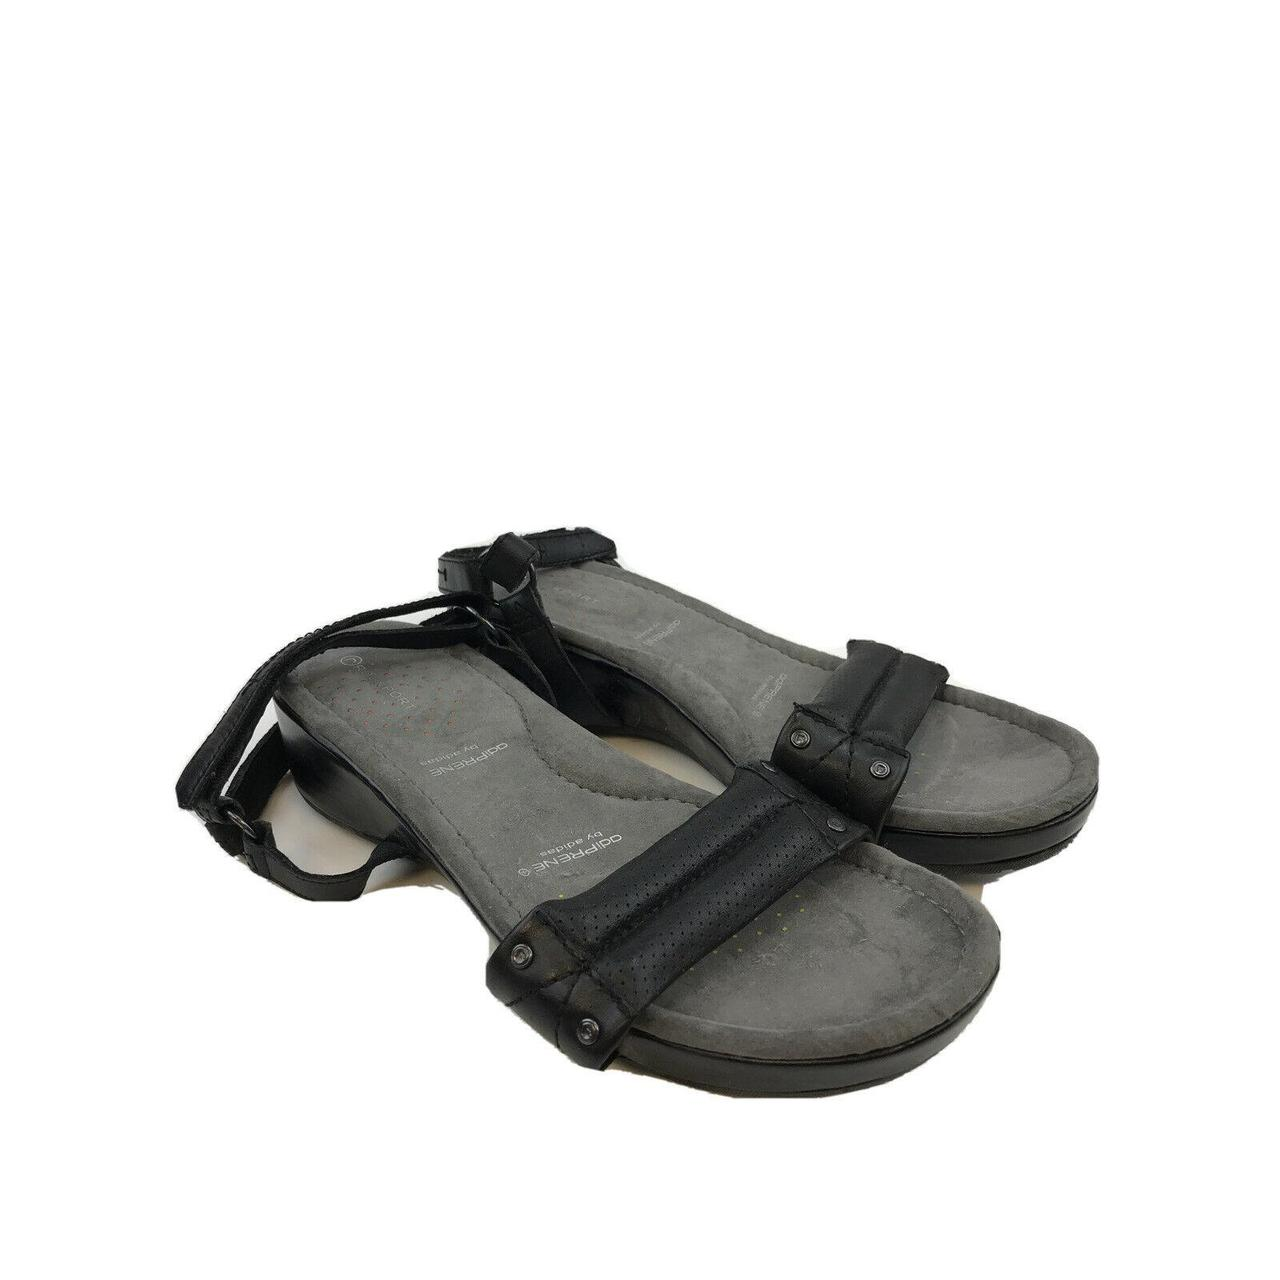 Product Image 1 - Rockport Women's Black Leather Ankle